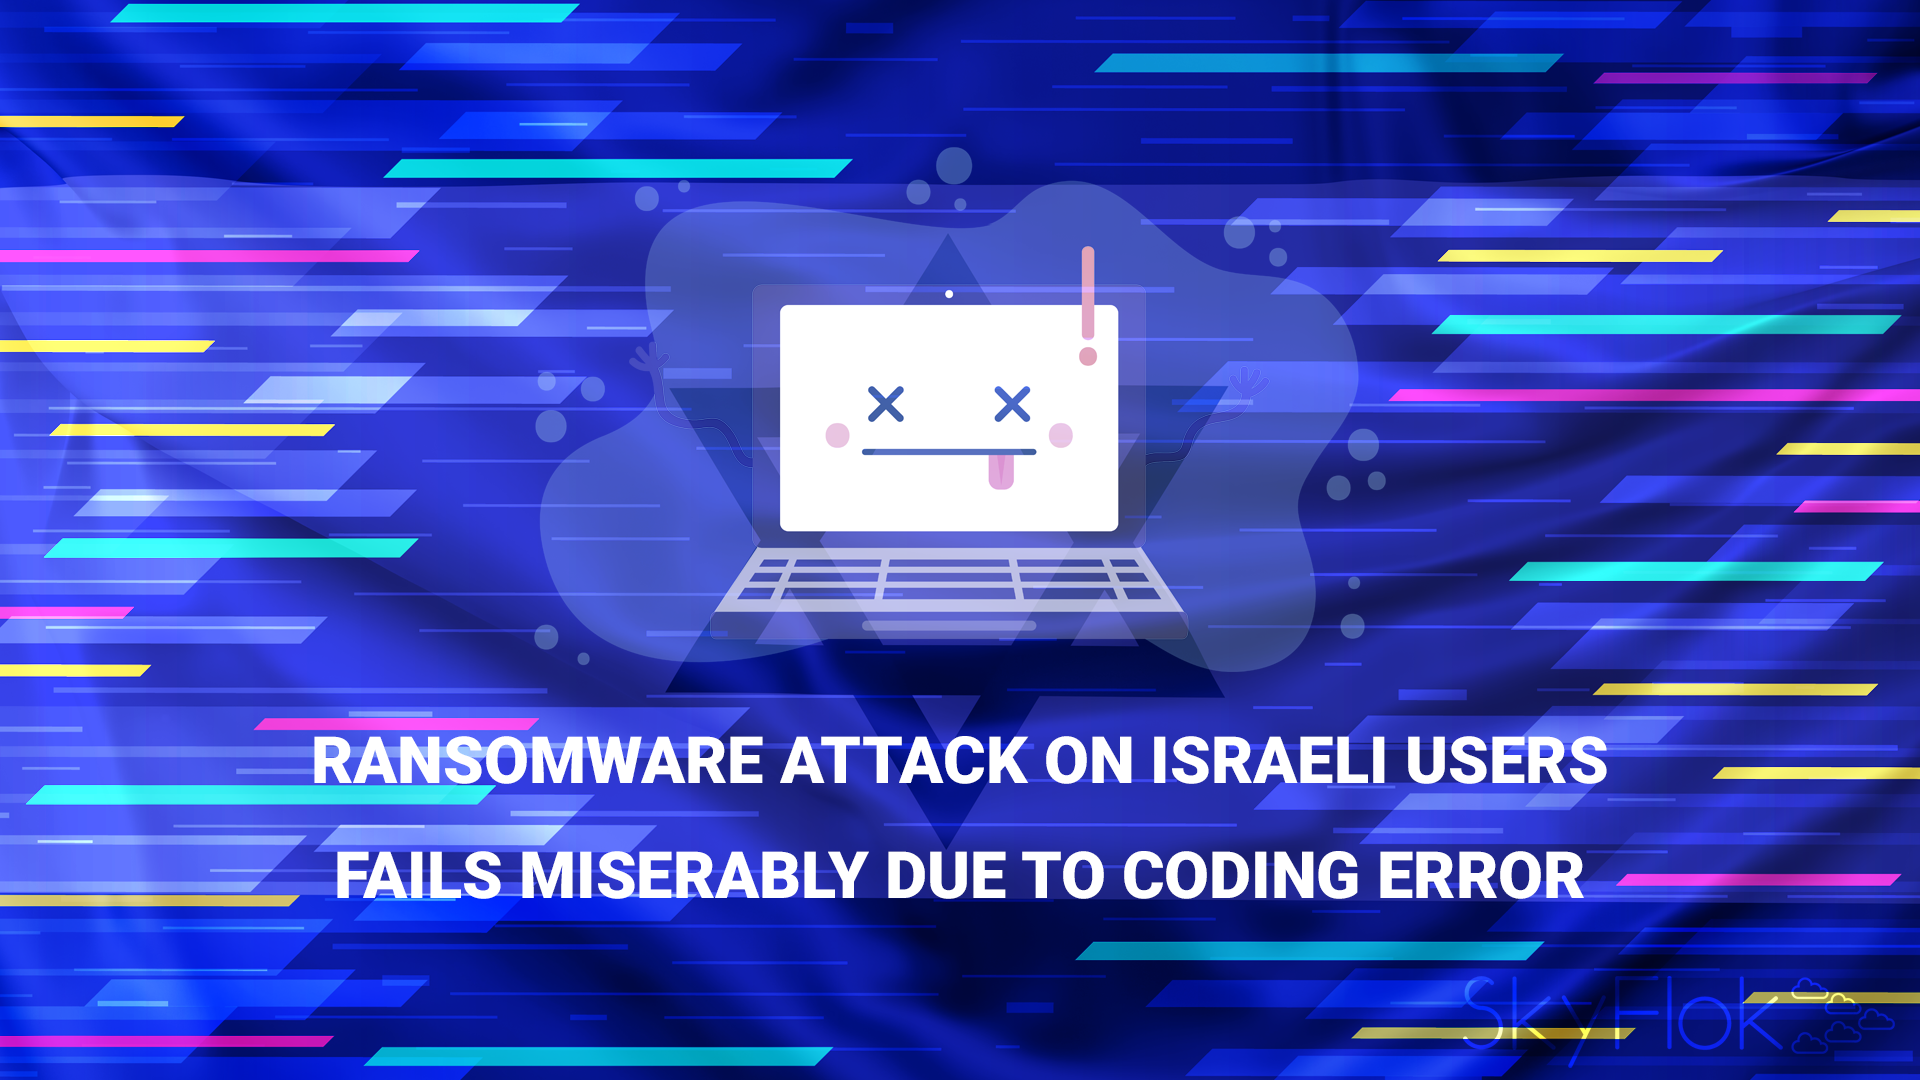 Ransomware attack on Israeli users fails miserably due to coding error